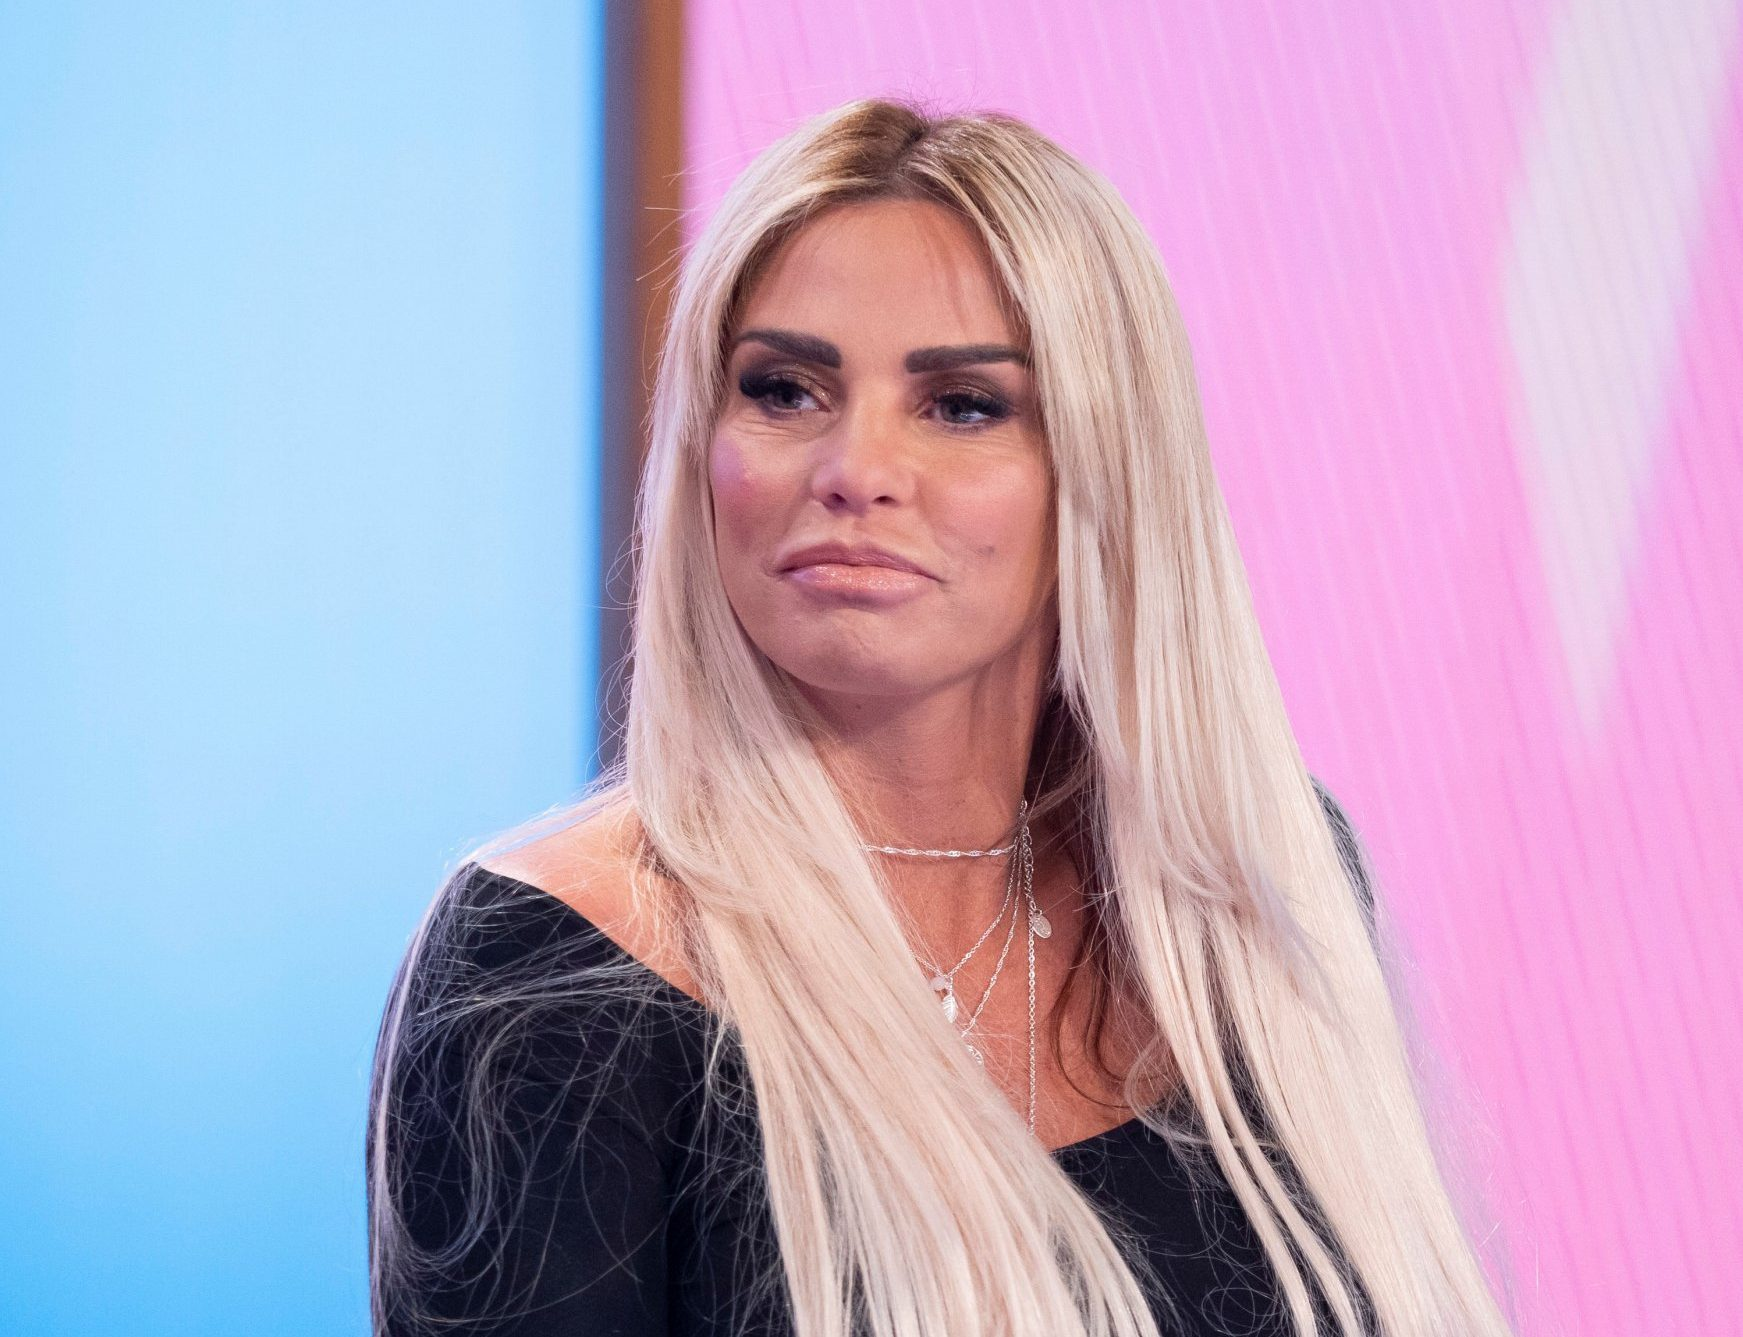 'I look disgusting': Katie Price reveals she's miserable over her weight gain